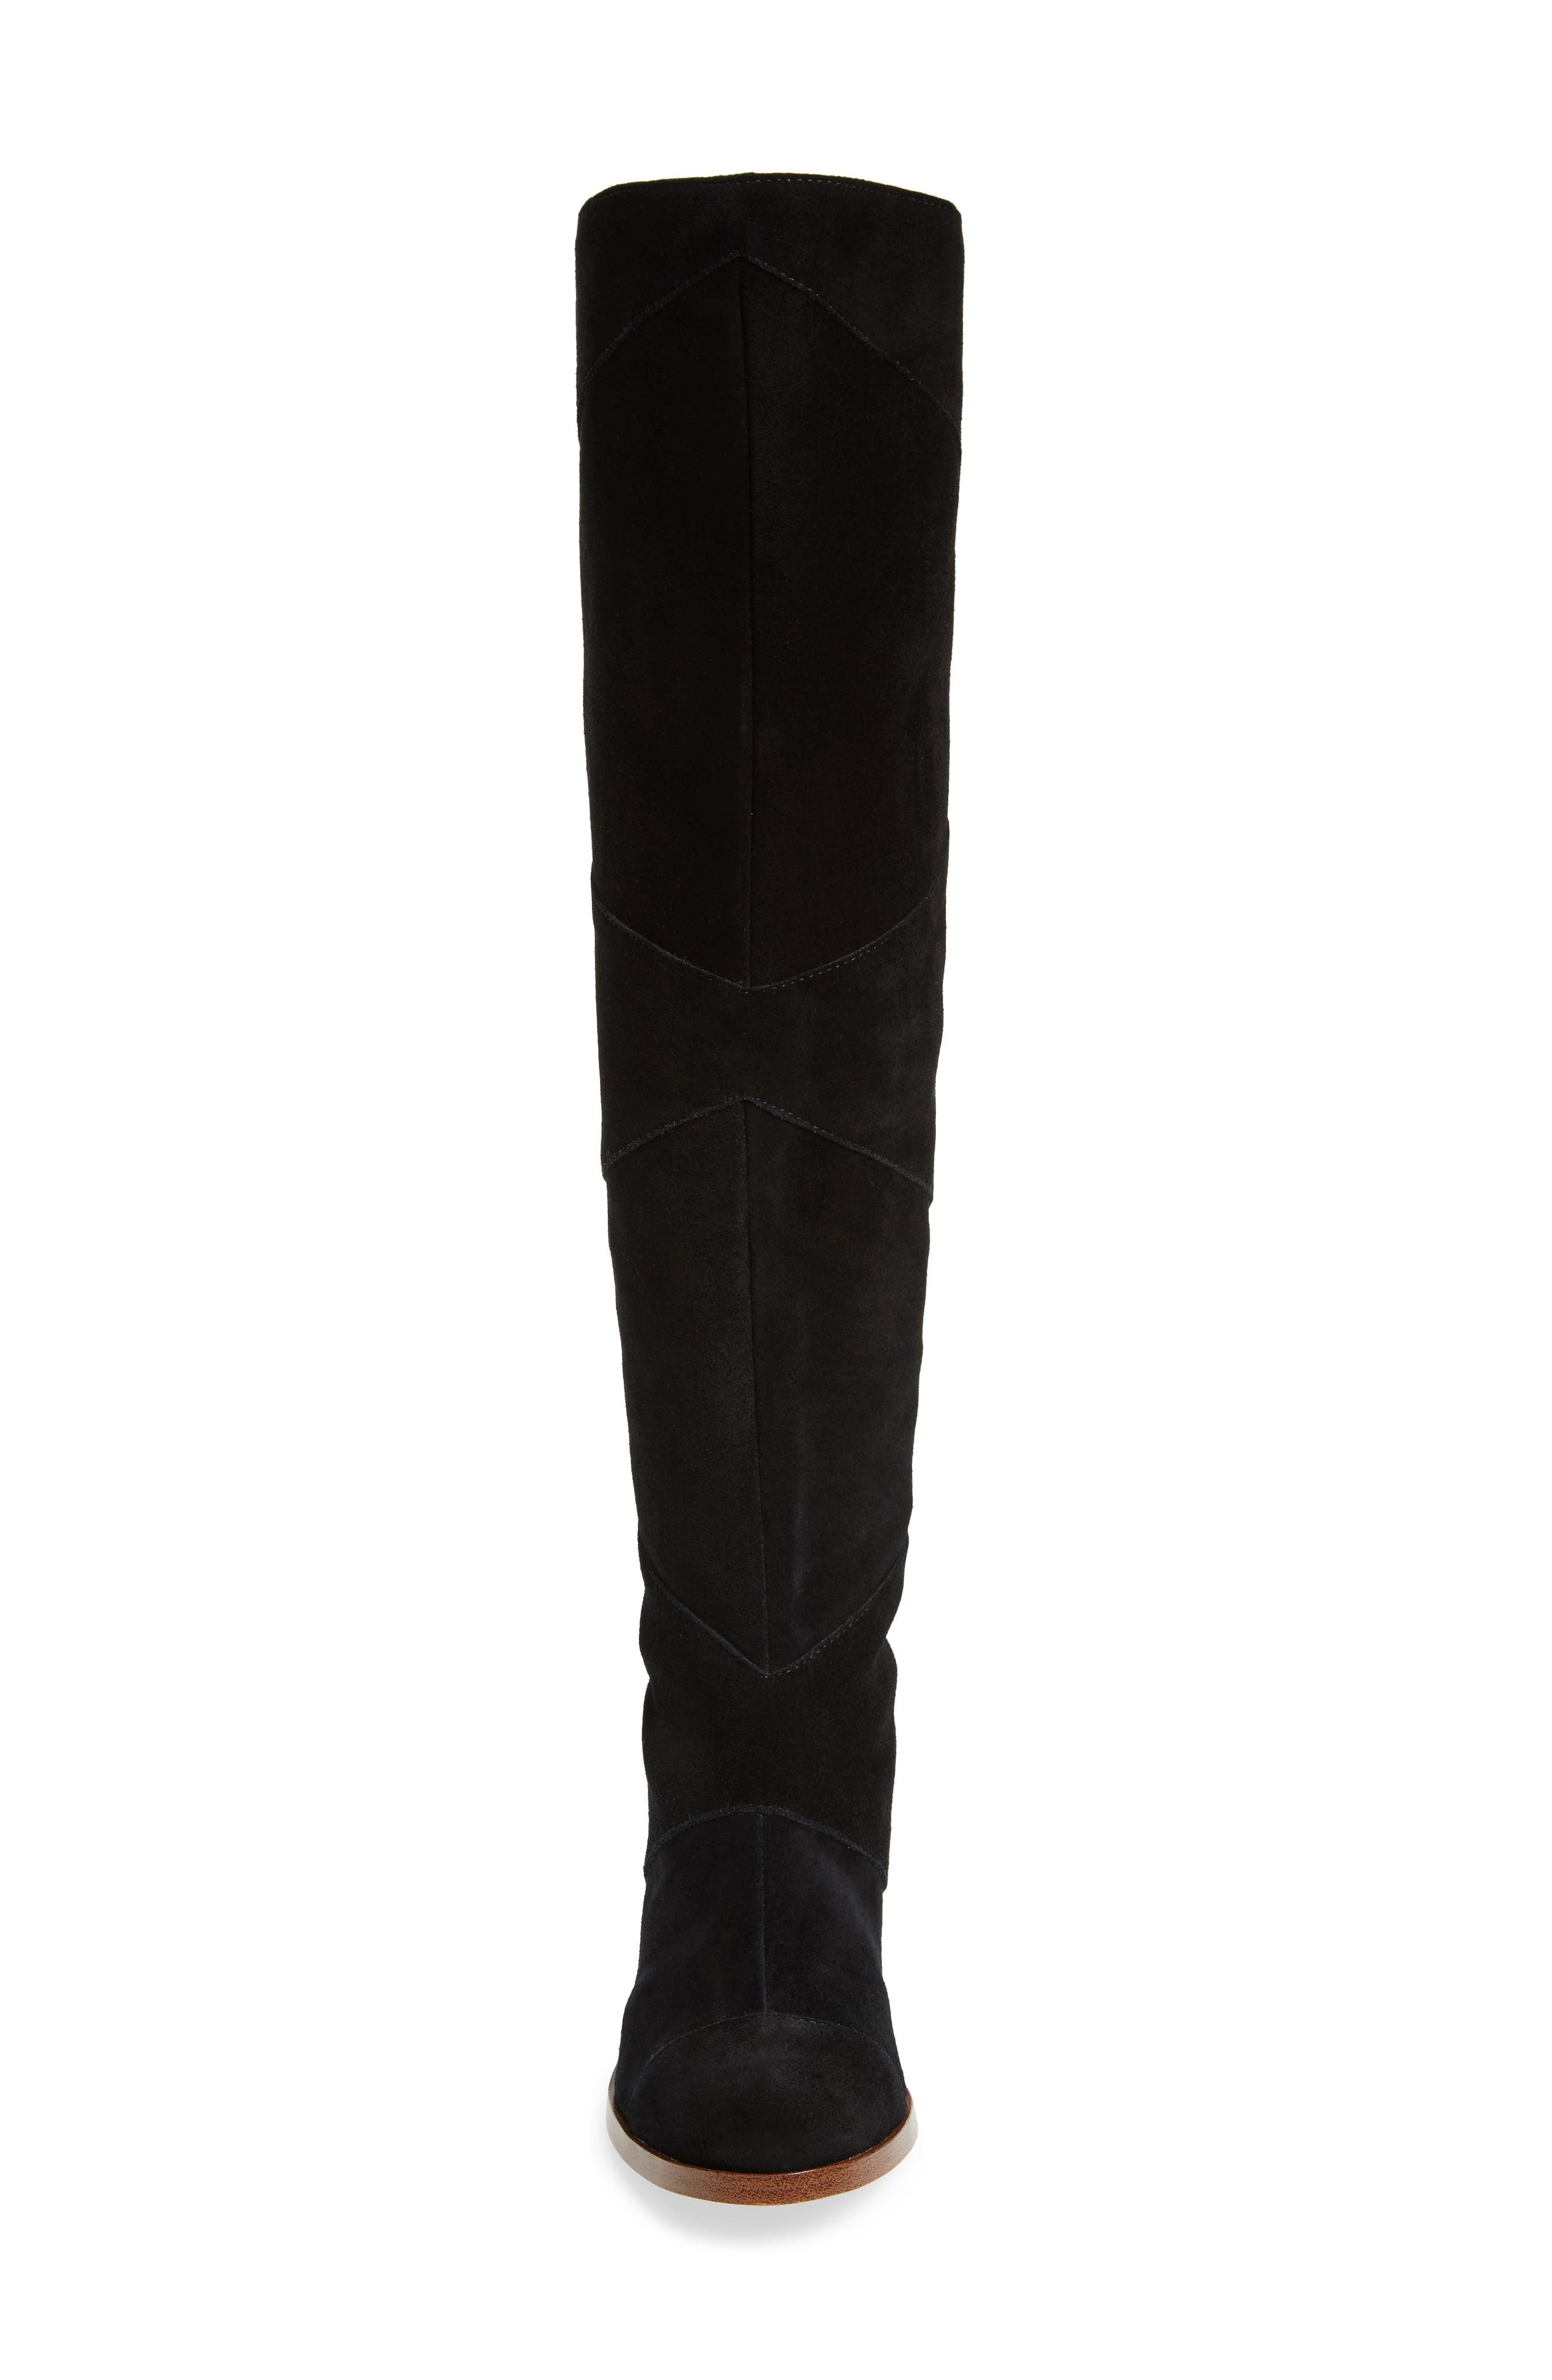 SOLE SOCIETY, Tiff Over the Knee Boot, Alternate thumbnail 4, color, BLACK